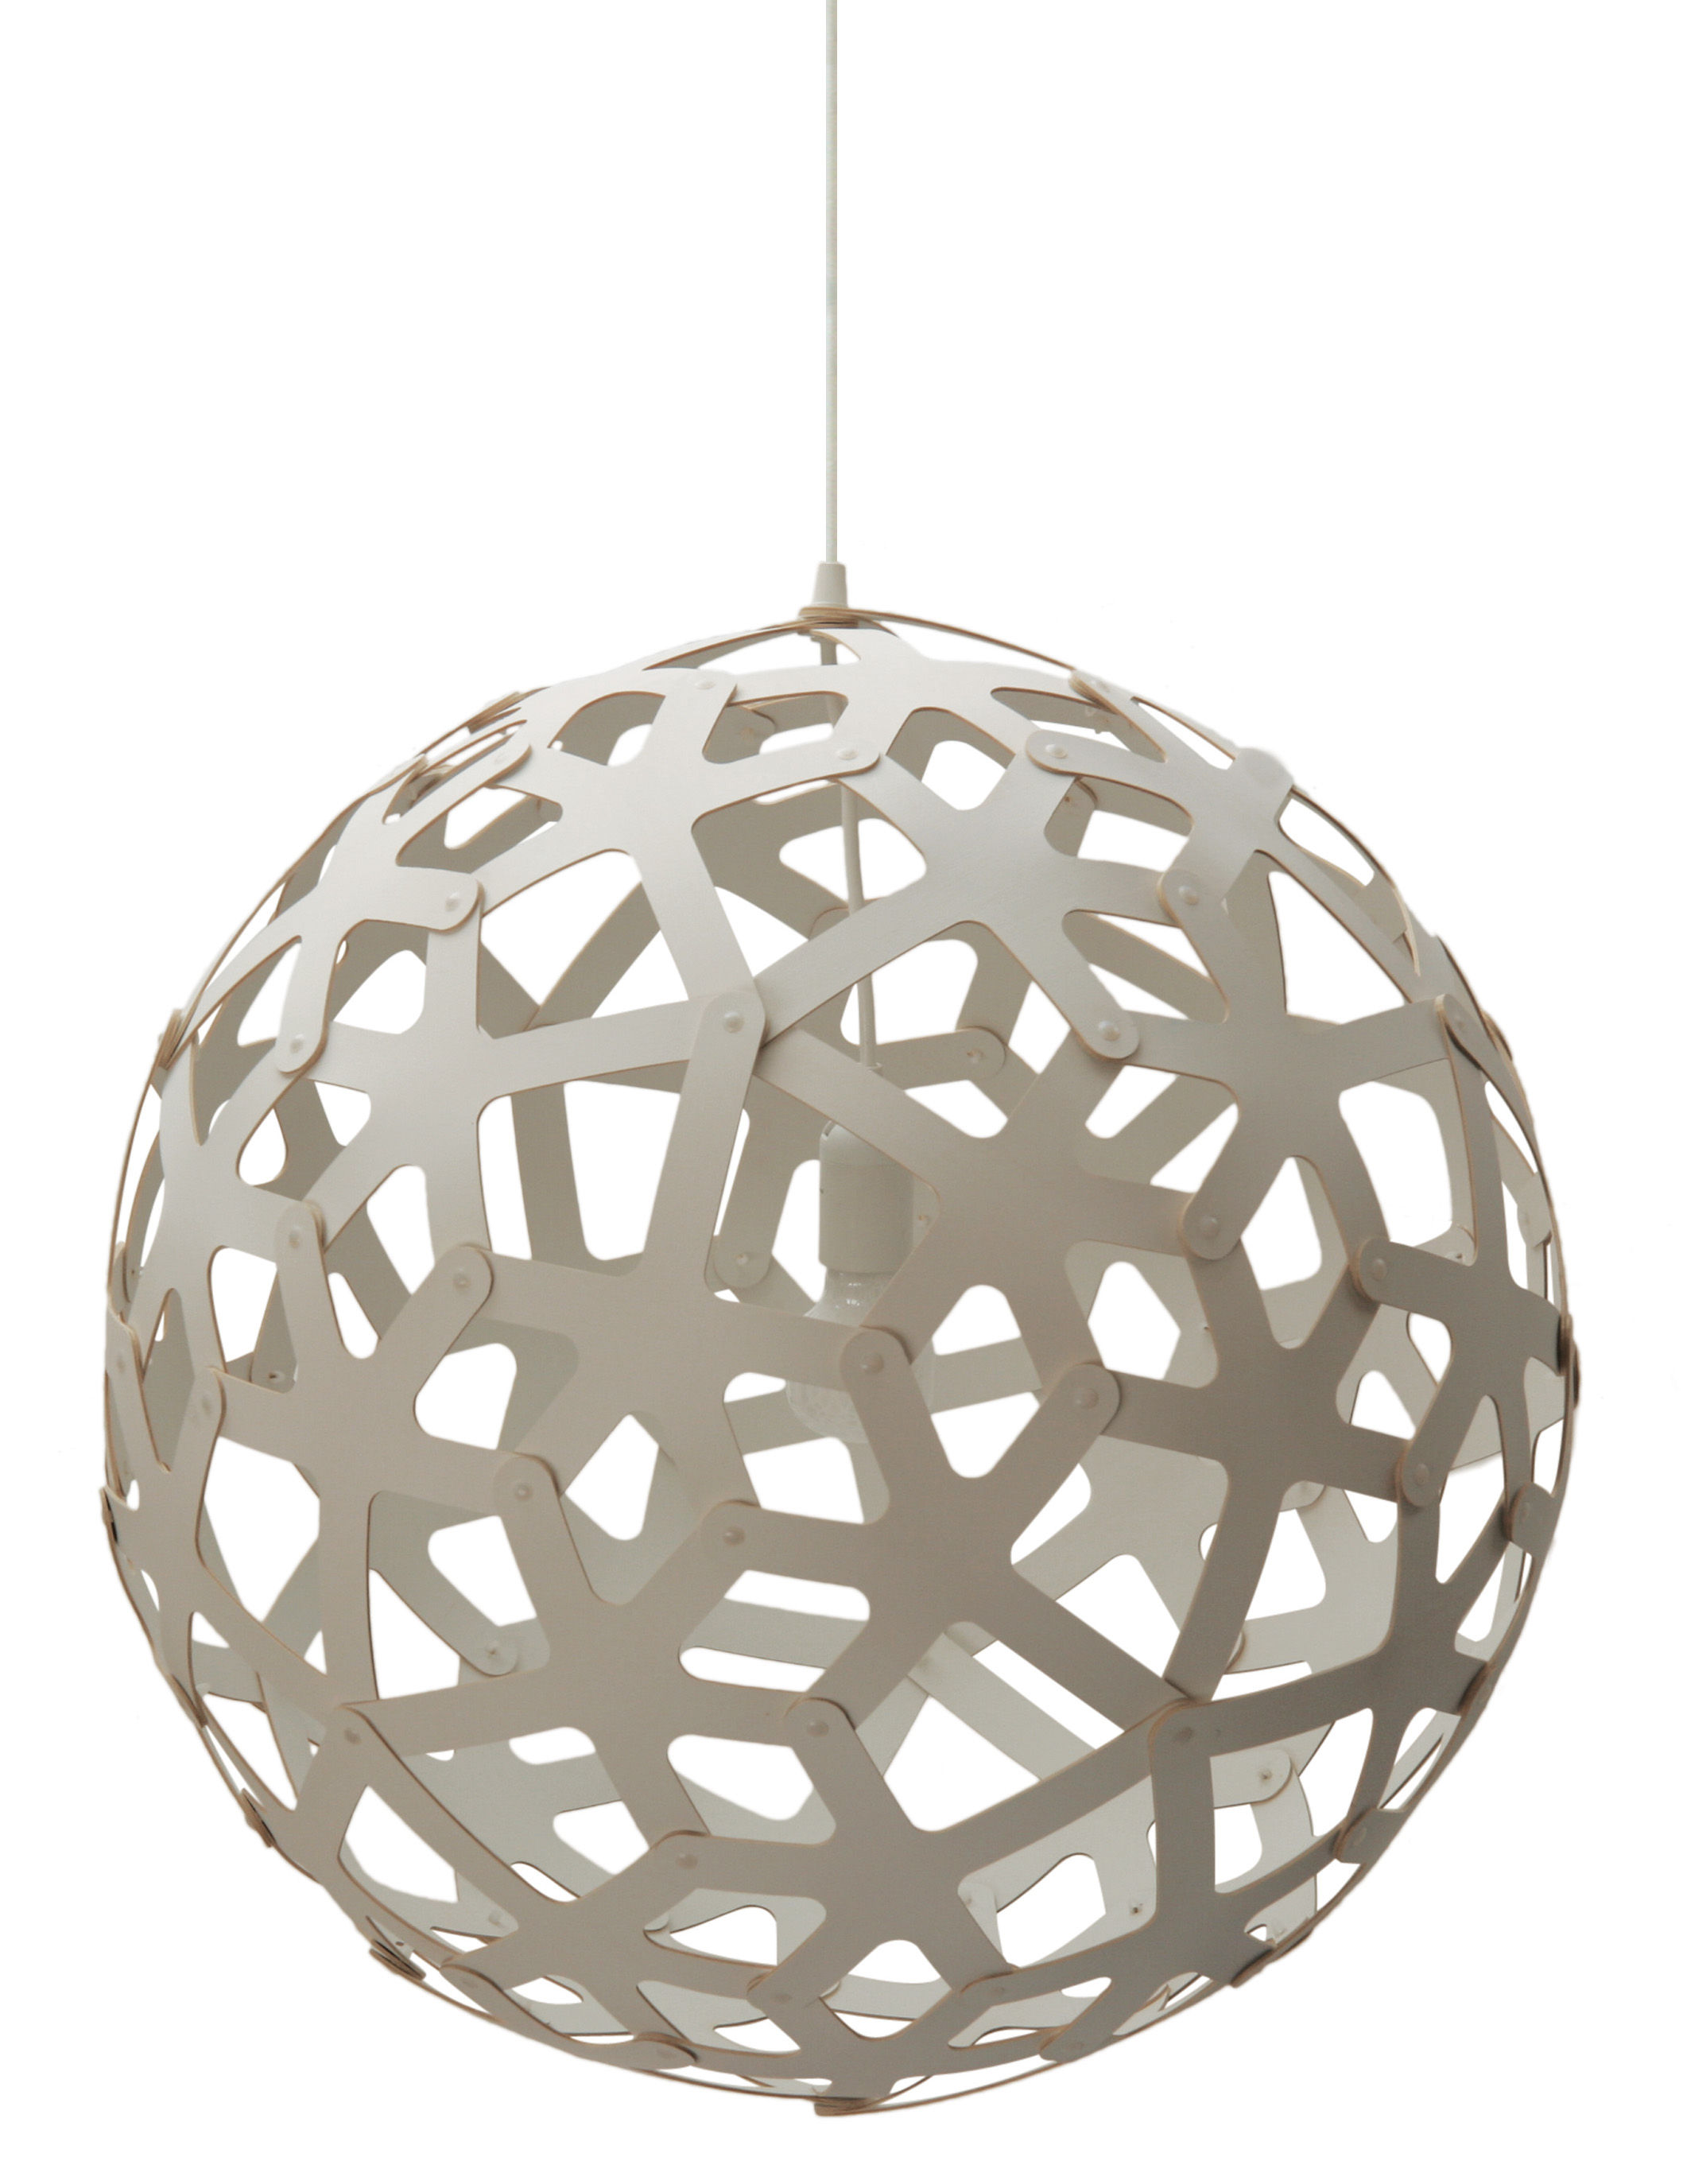 Luminaire - Suspensions - Suspension Coral / Ø 40 cm - Blanc - David Trubridge - Blanc - Pin